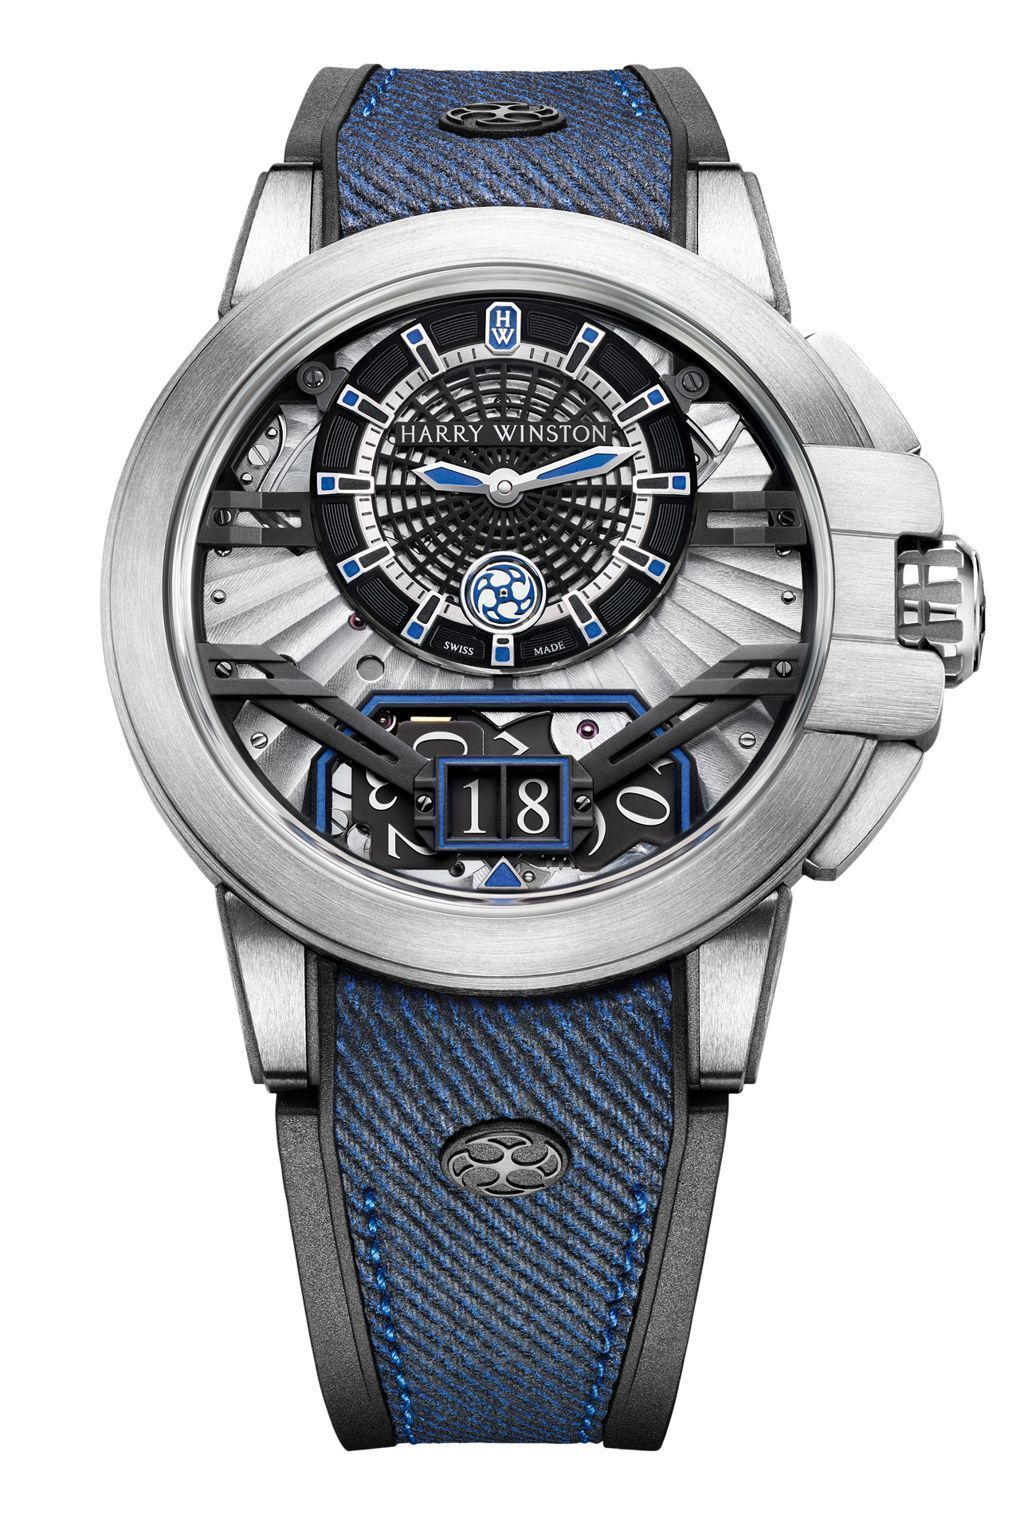 story watches style gq vintage week mens watch the cartier blogs eye of basculante tank